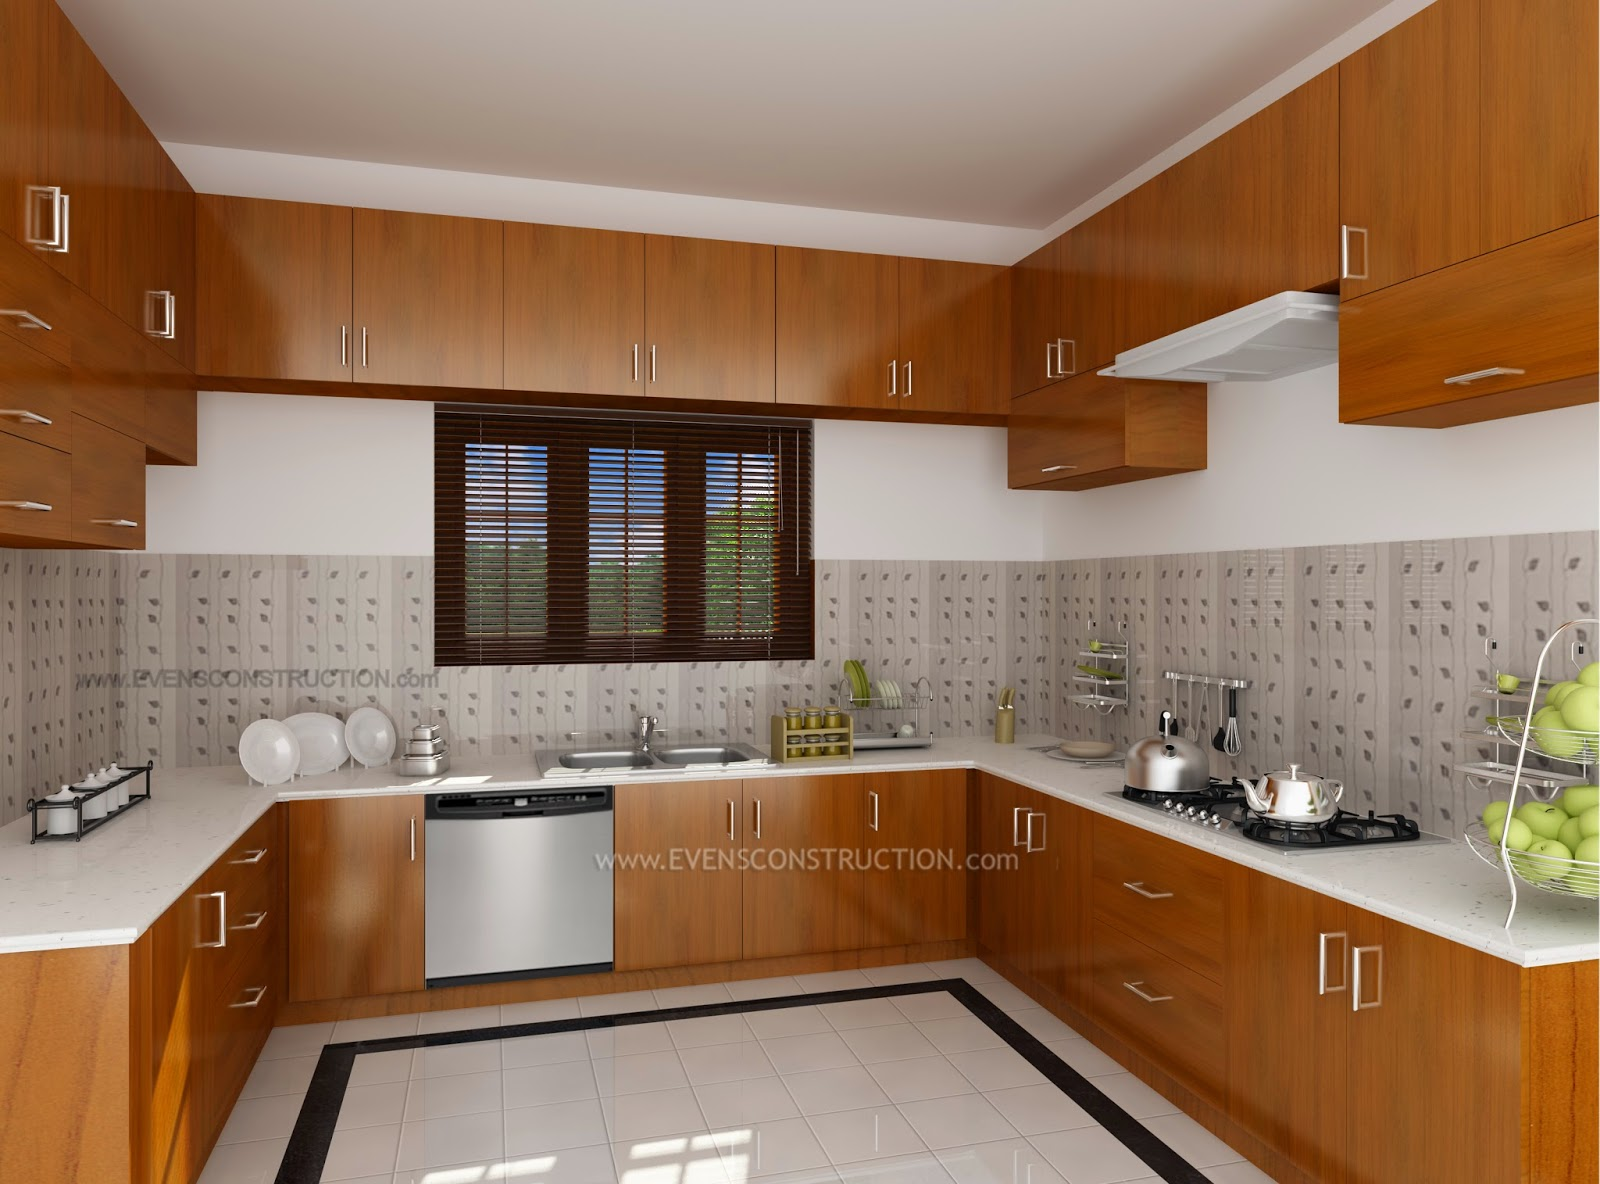 evens construction pvt ltd october 2014 On kerala home design interior kitchen